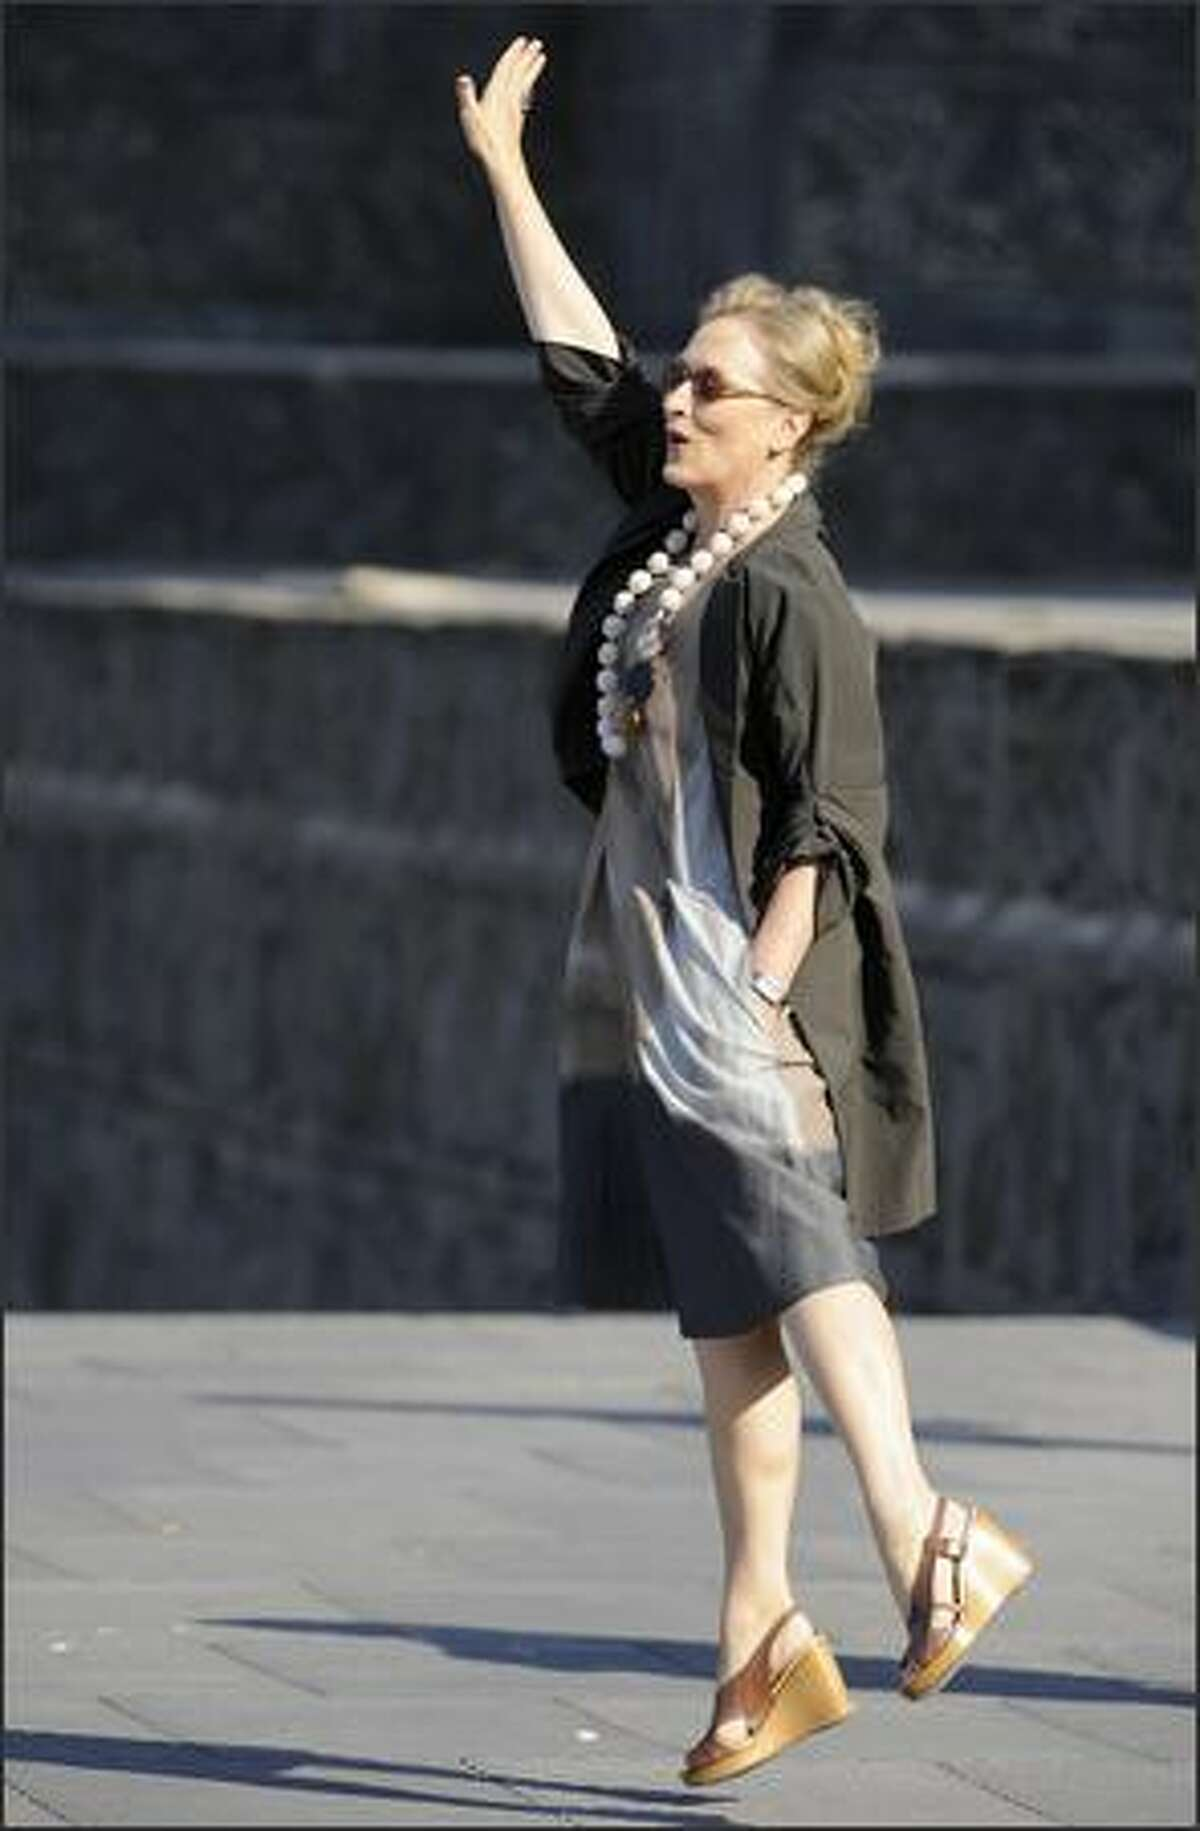 Actress Meryl Streep waves during a photocall in the 56th San Sebastian International Film Festival.